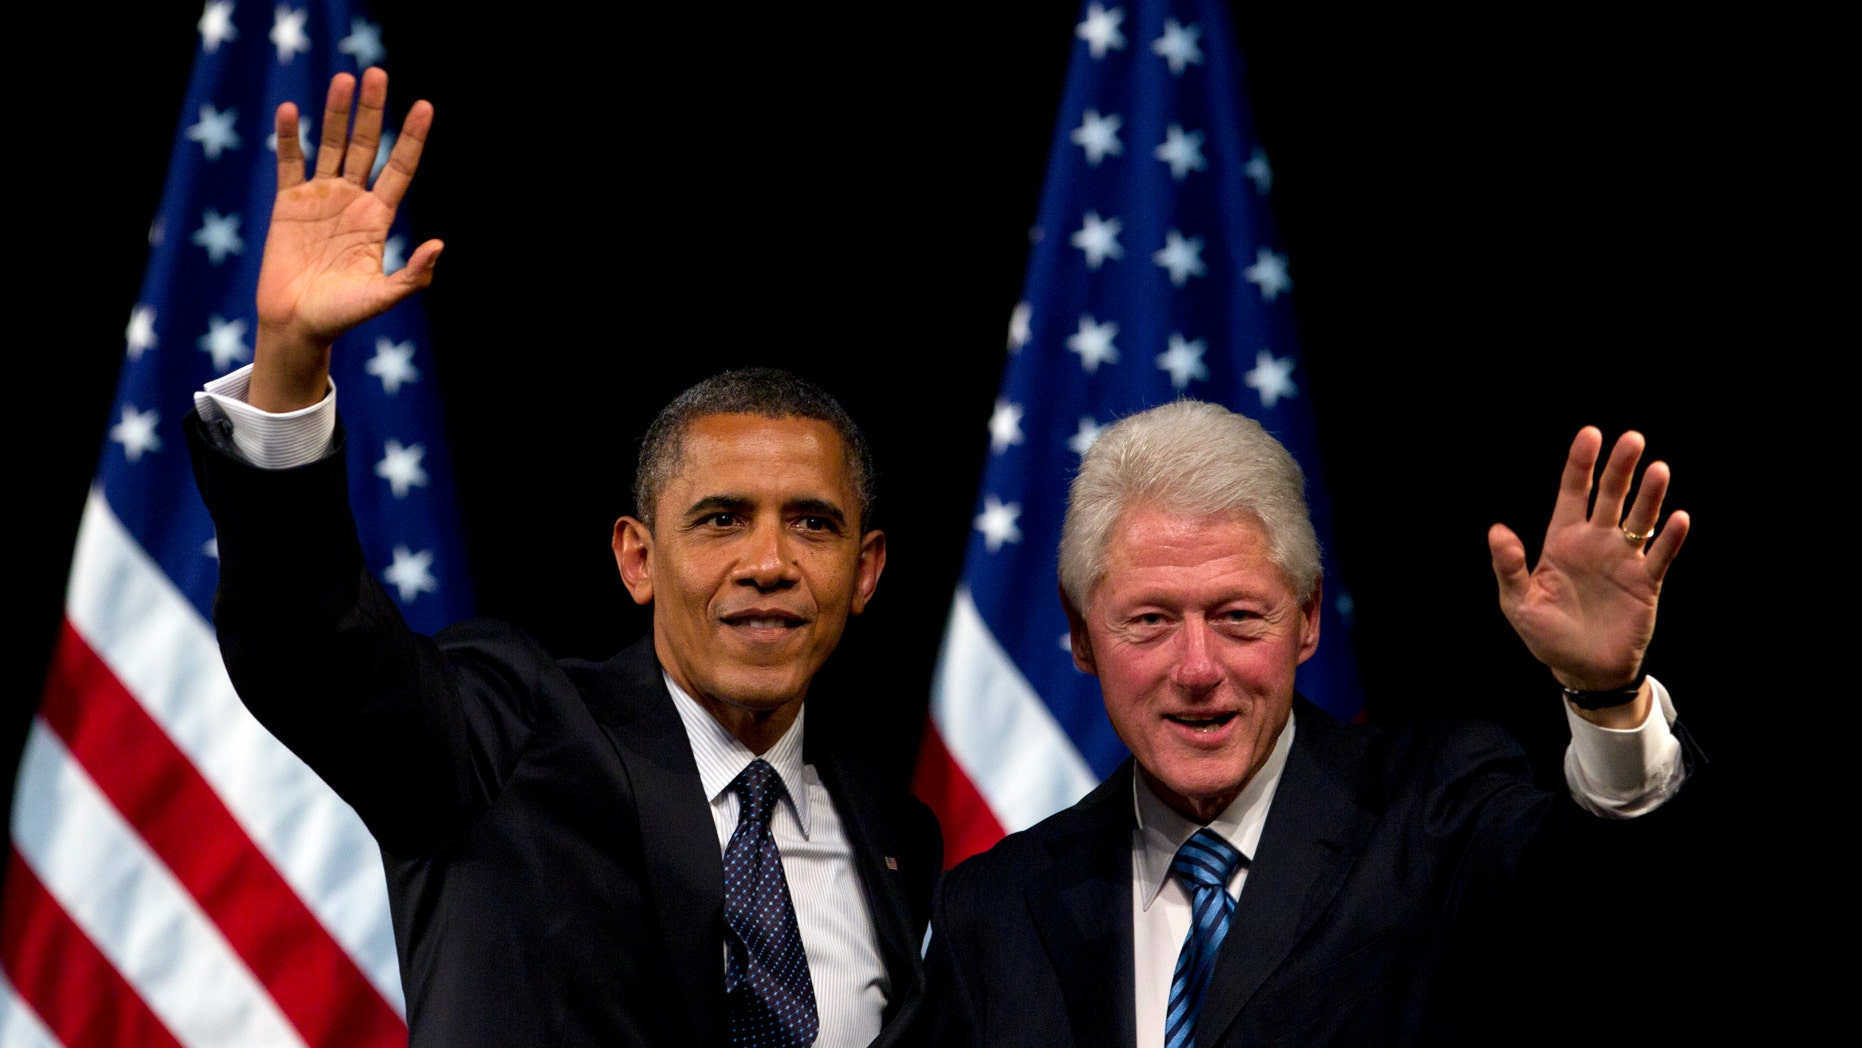 June 4, 2012: President Barack Obama and former President Bill Clinton wave to the crowd during a campaign event at the New Amsterdam Theater in New York.